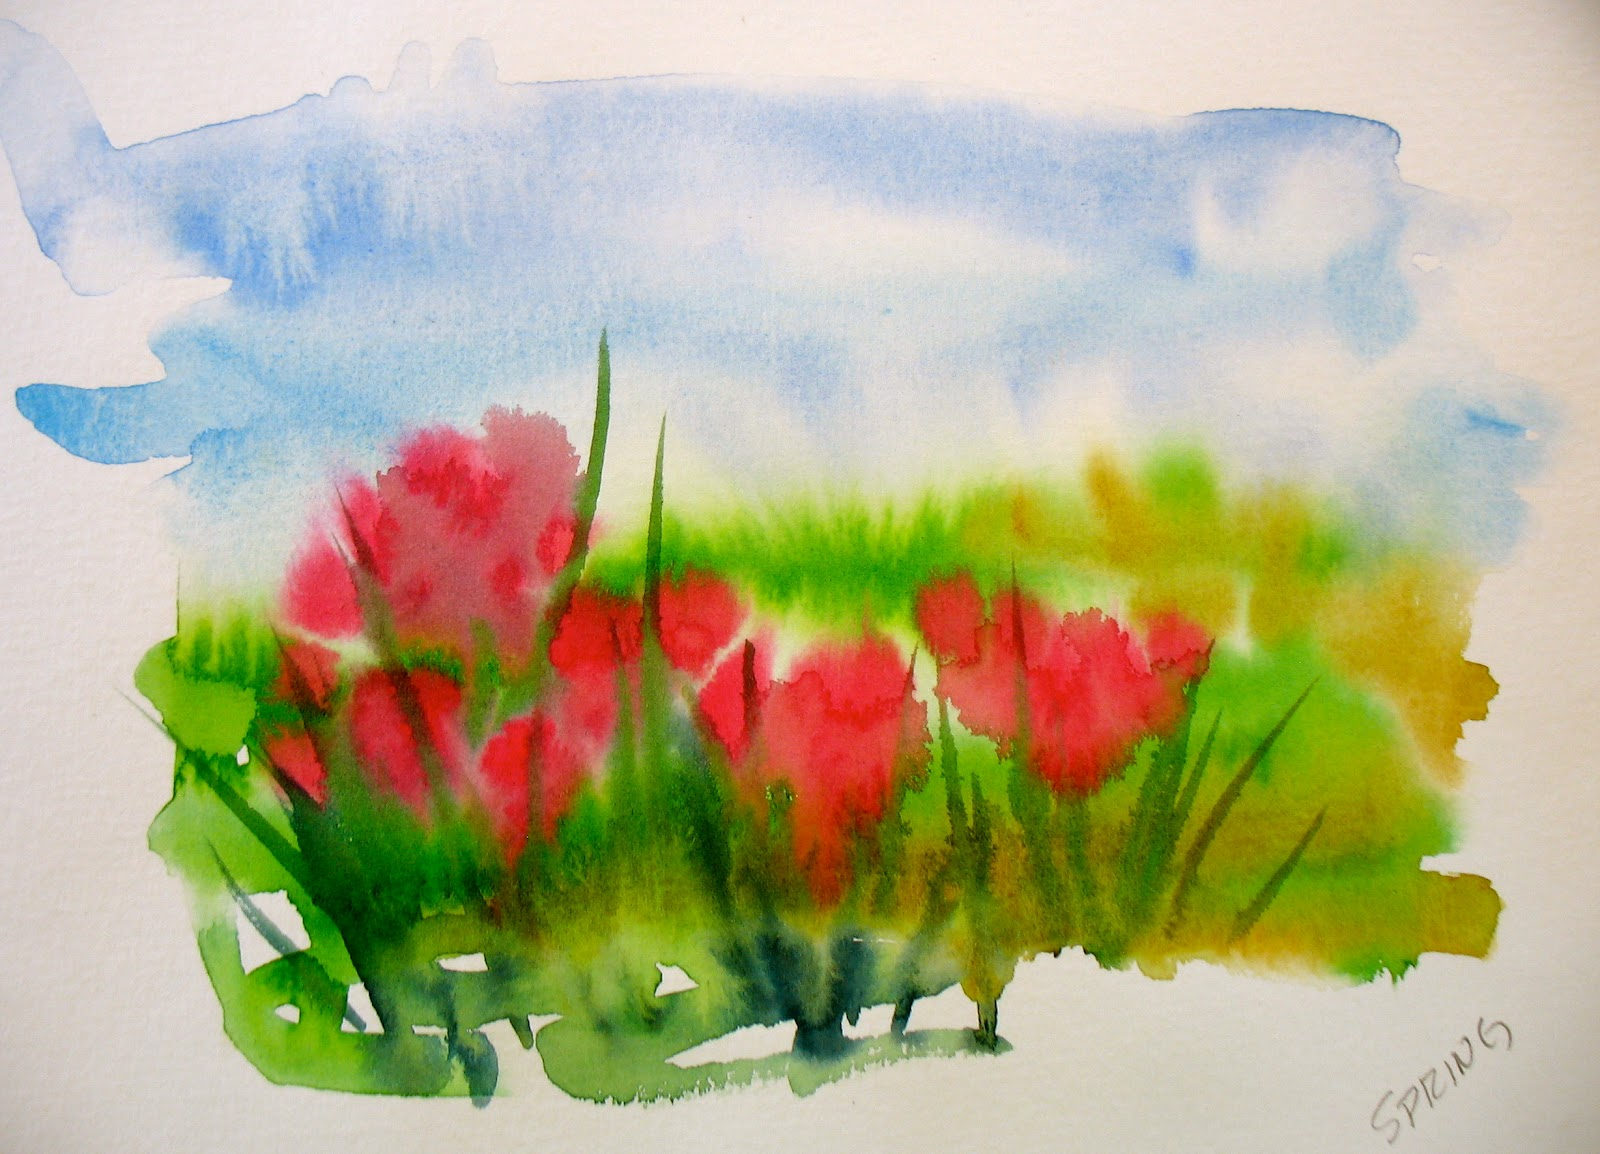 The Painted Prism: FLOWERS: 10 Sketchbook Exercises to Try